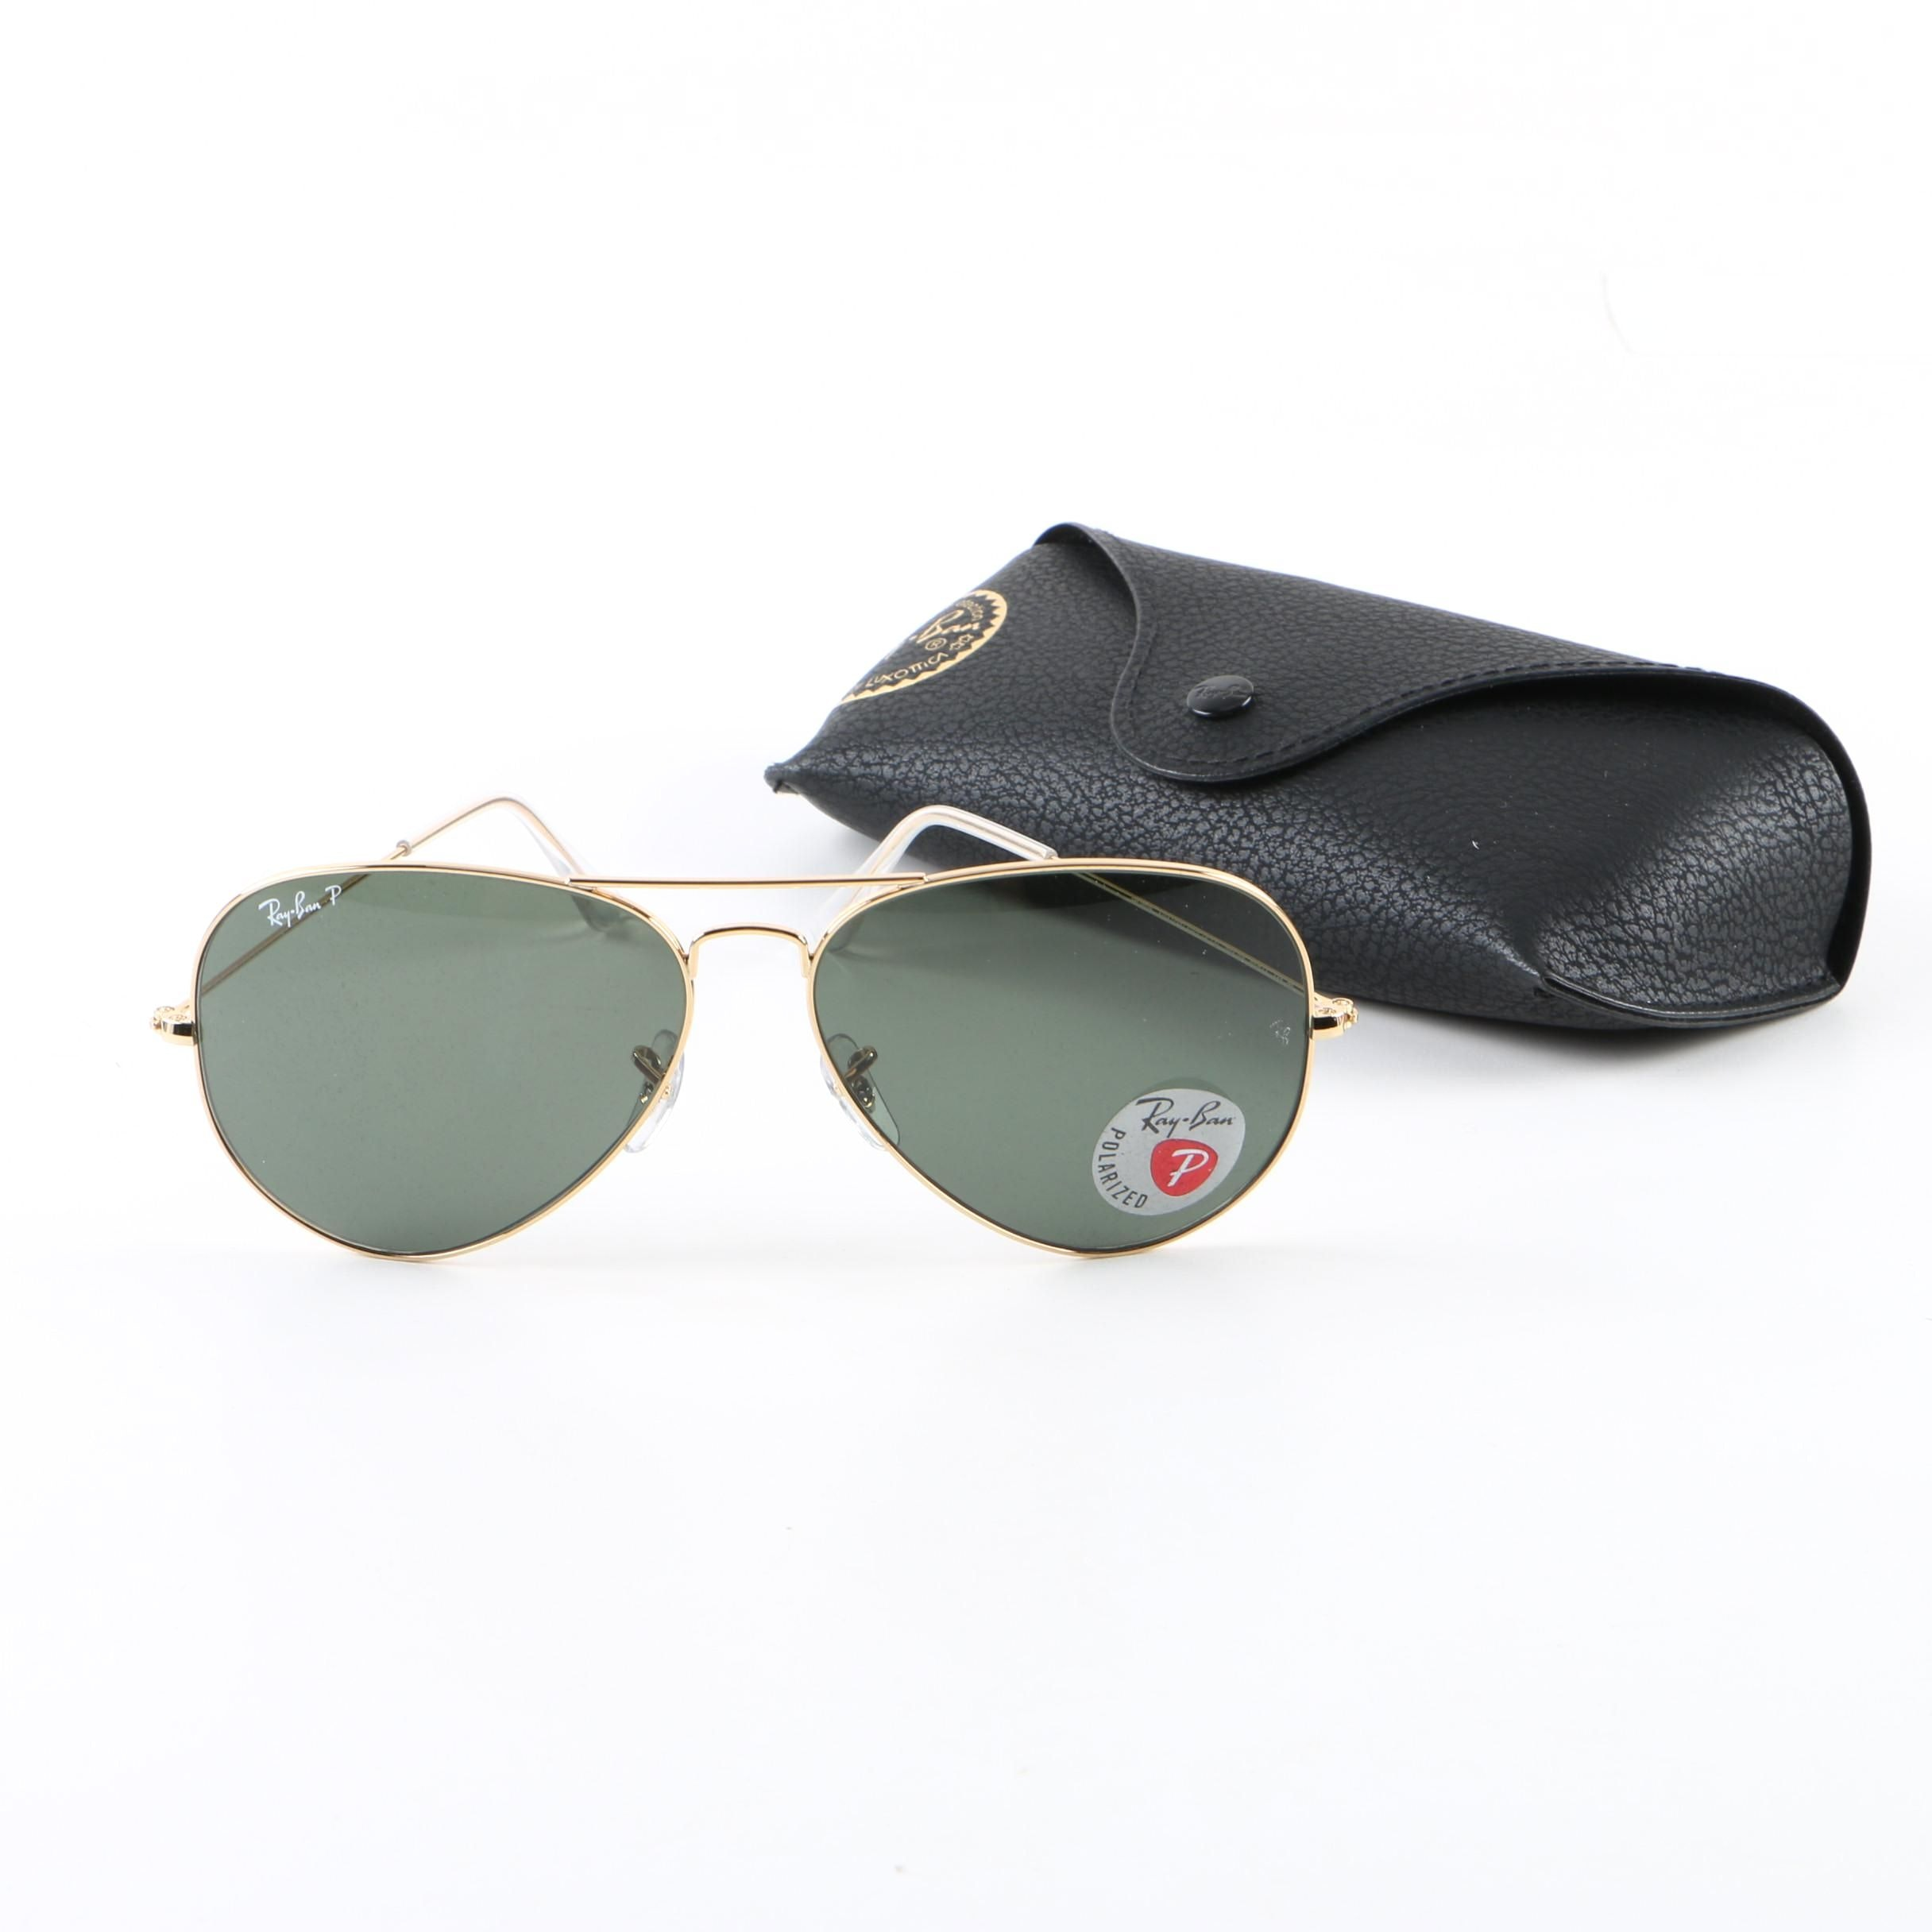 Ray-Ban RB 3025 Aviator Polarized Sunglasses with Case